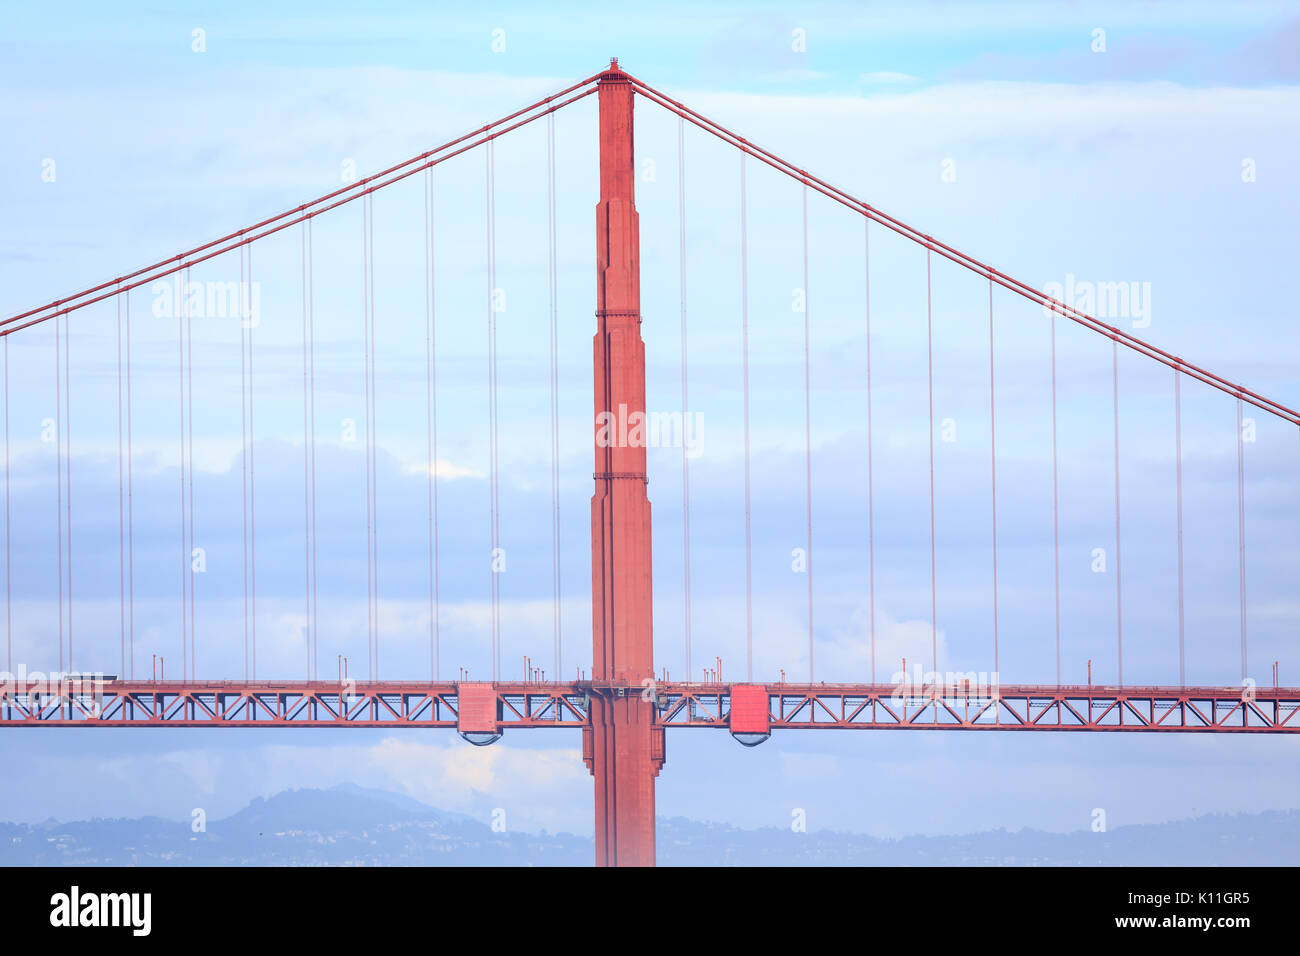 Golden Gate Bridge suspension tower and blue sky - Stock Image